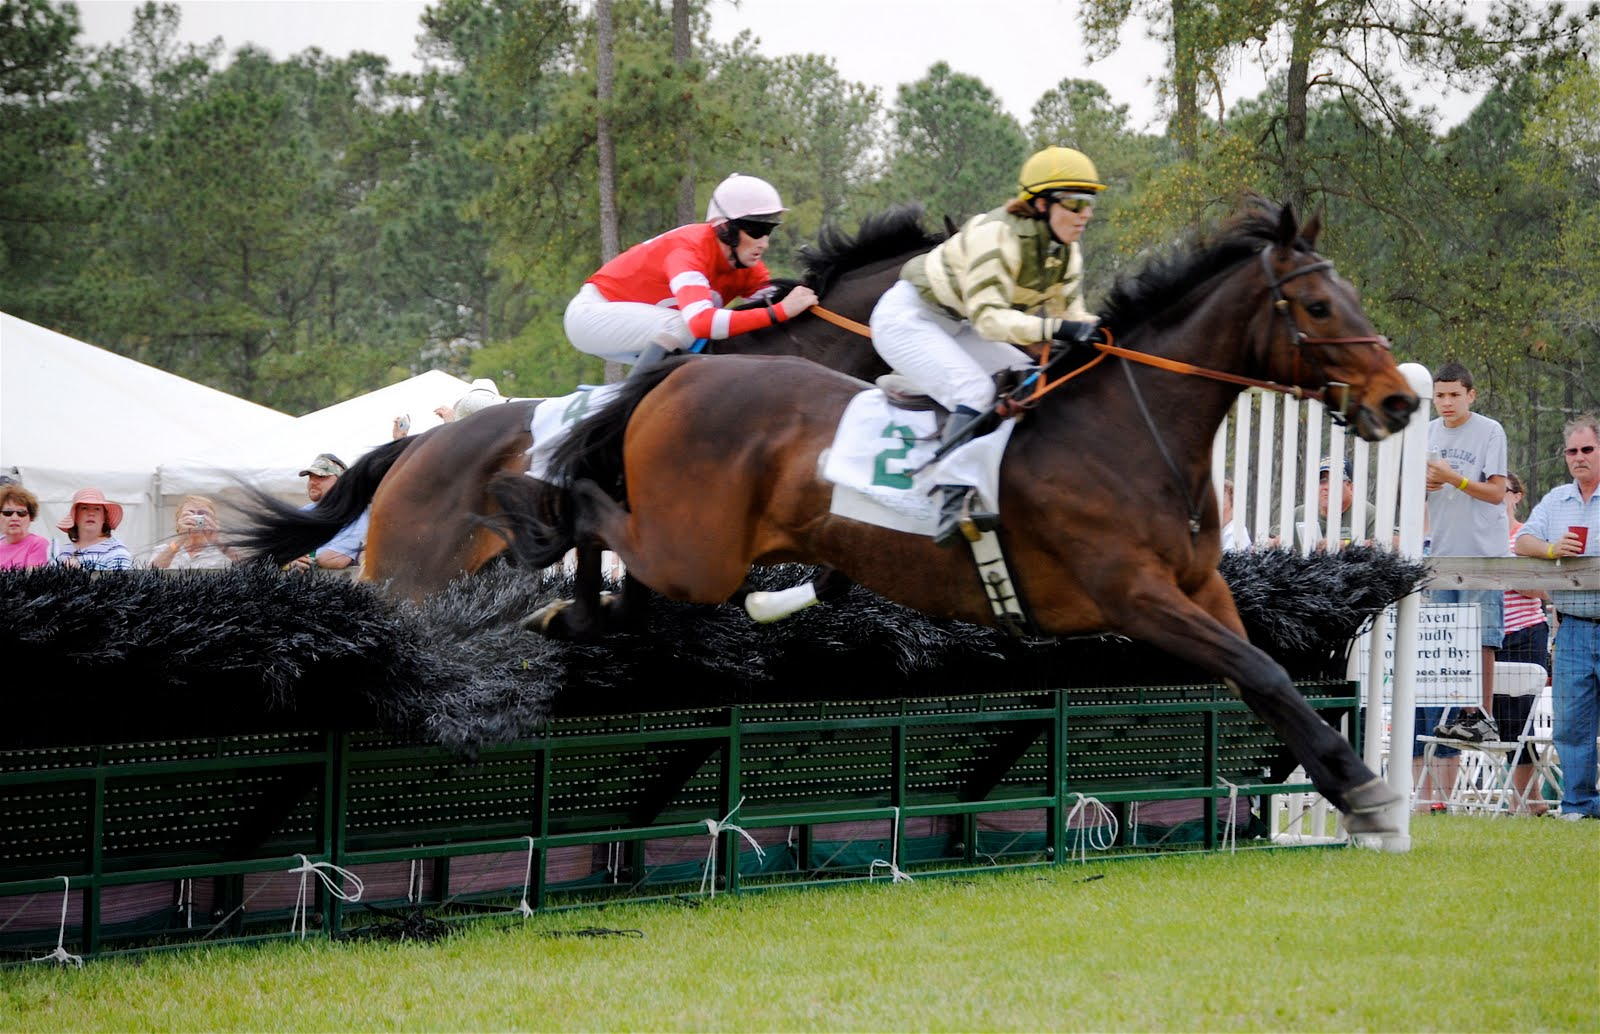 Pinehurst golf equestrian steeplechase racing in the for Steeple chase